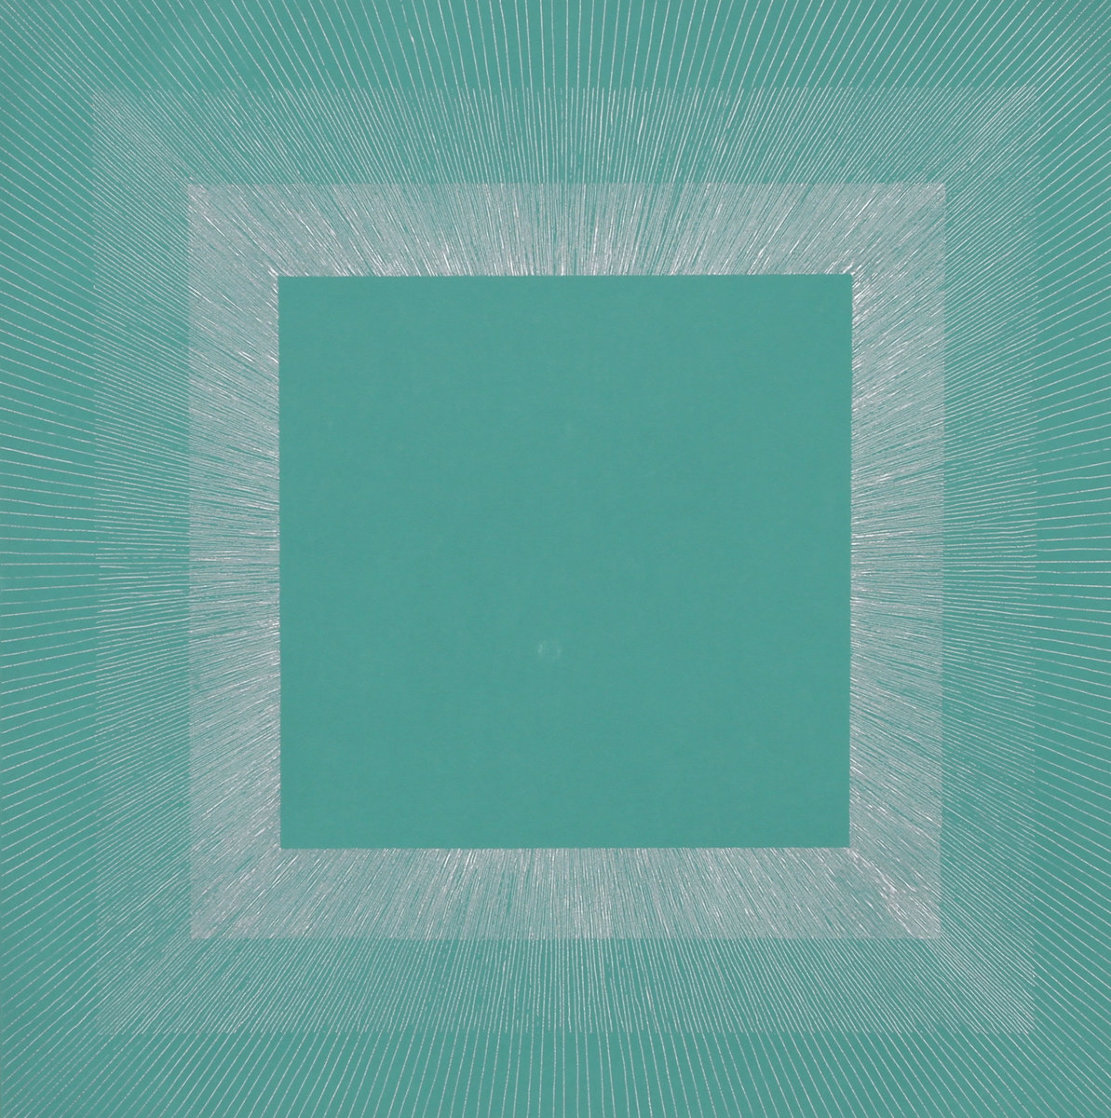 Winter Suite (Green with Silver) 1979 Limited Edition Print by Richard Anuszkiewicz